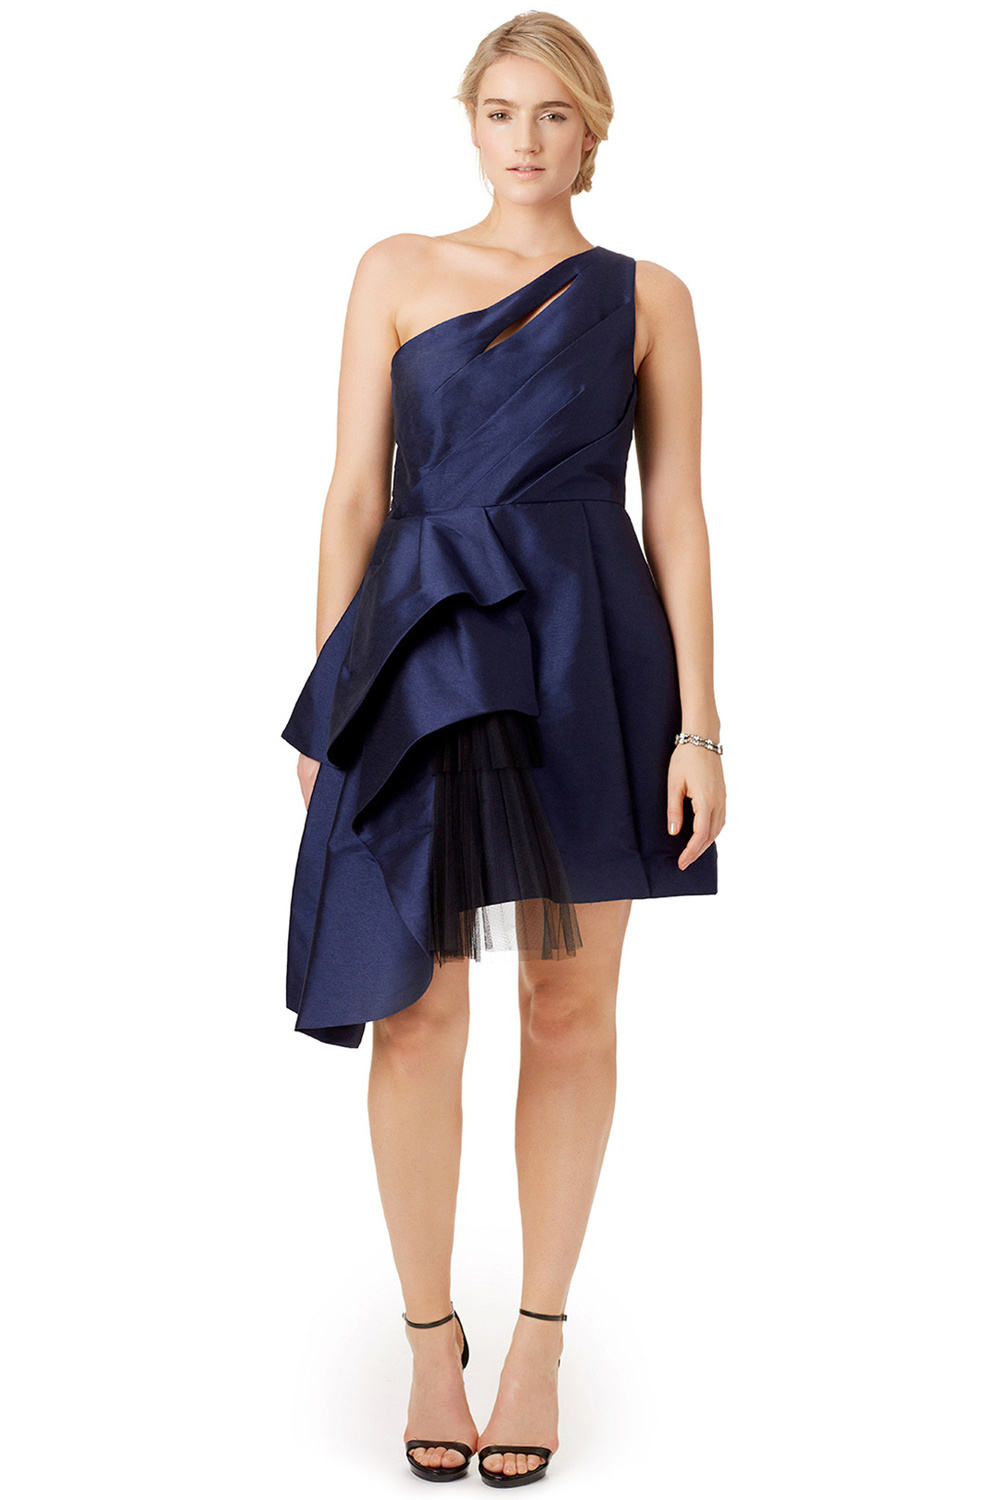 Flowing Stream dress. Monique Lhuillier. Rent the Runway. $85.00 Rental fee